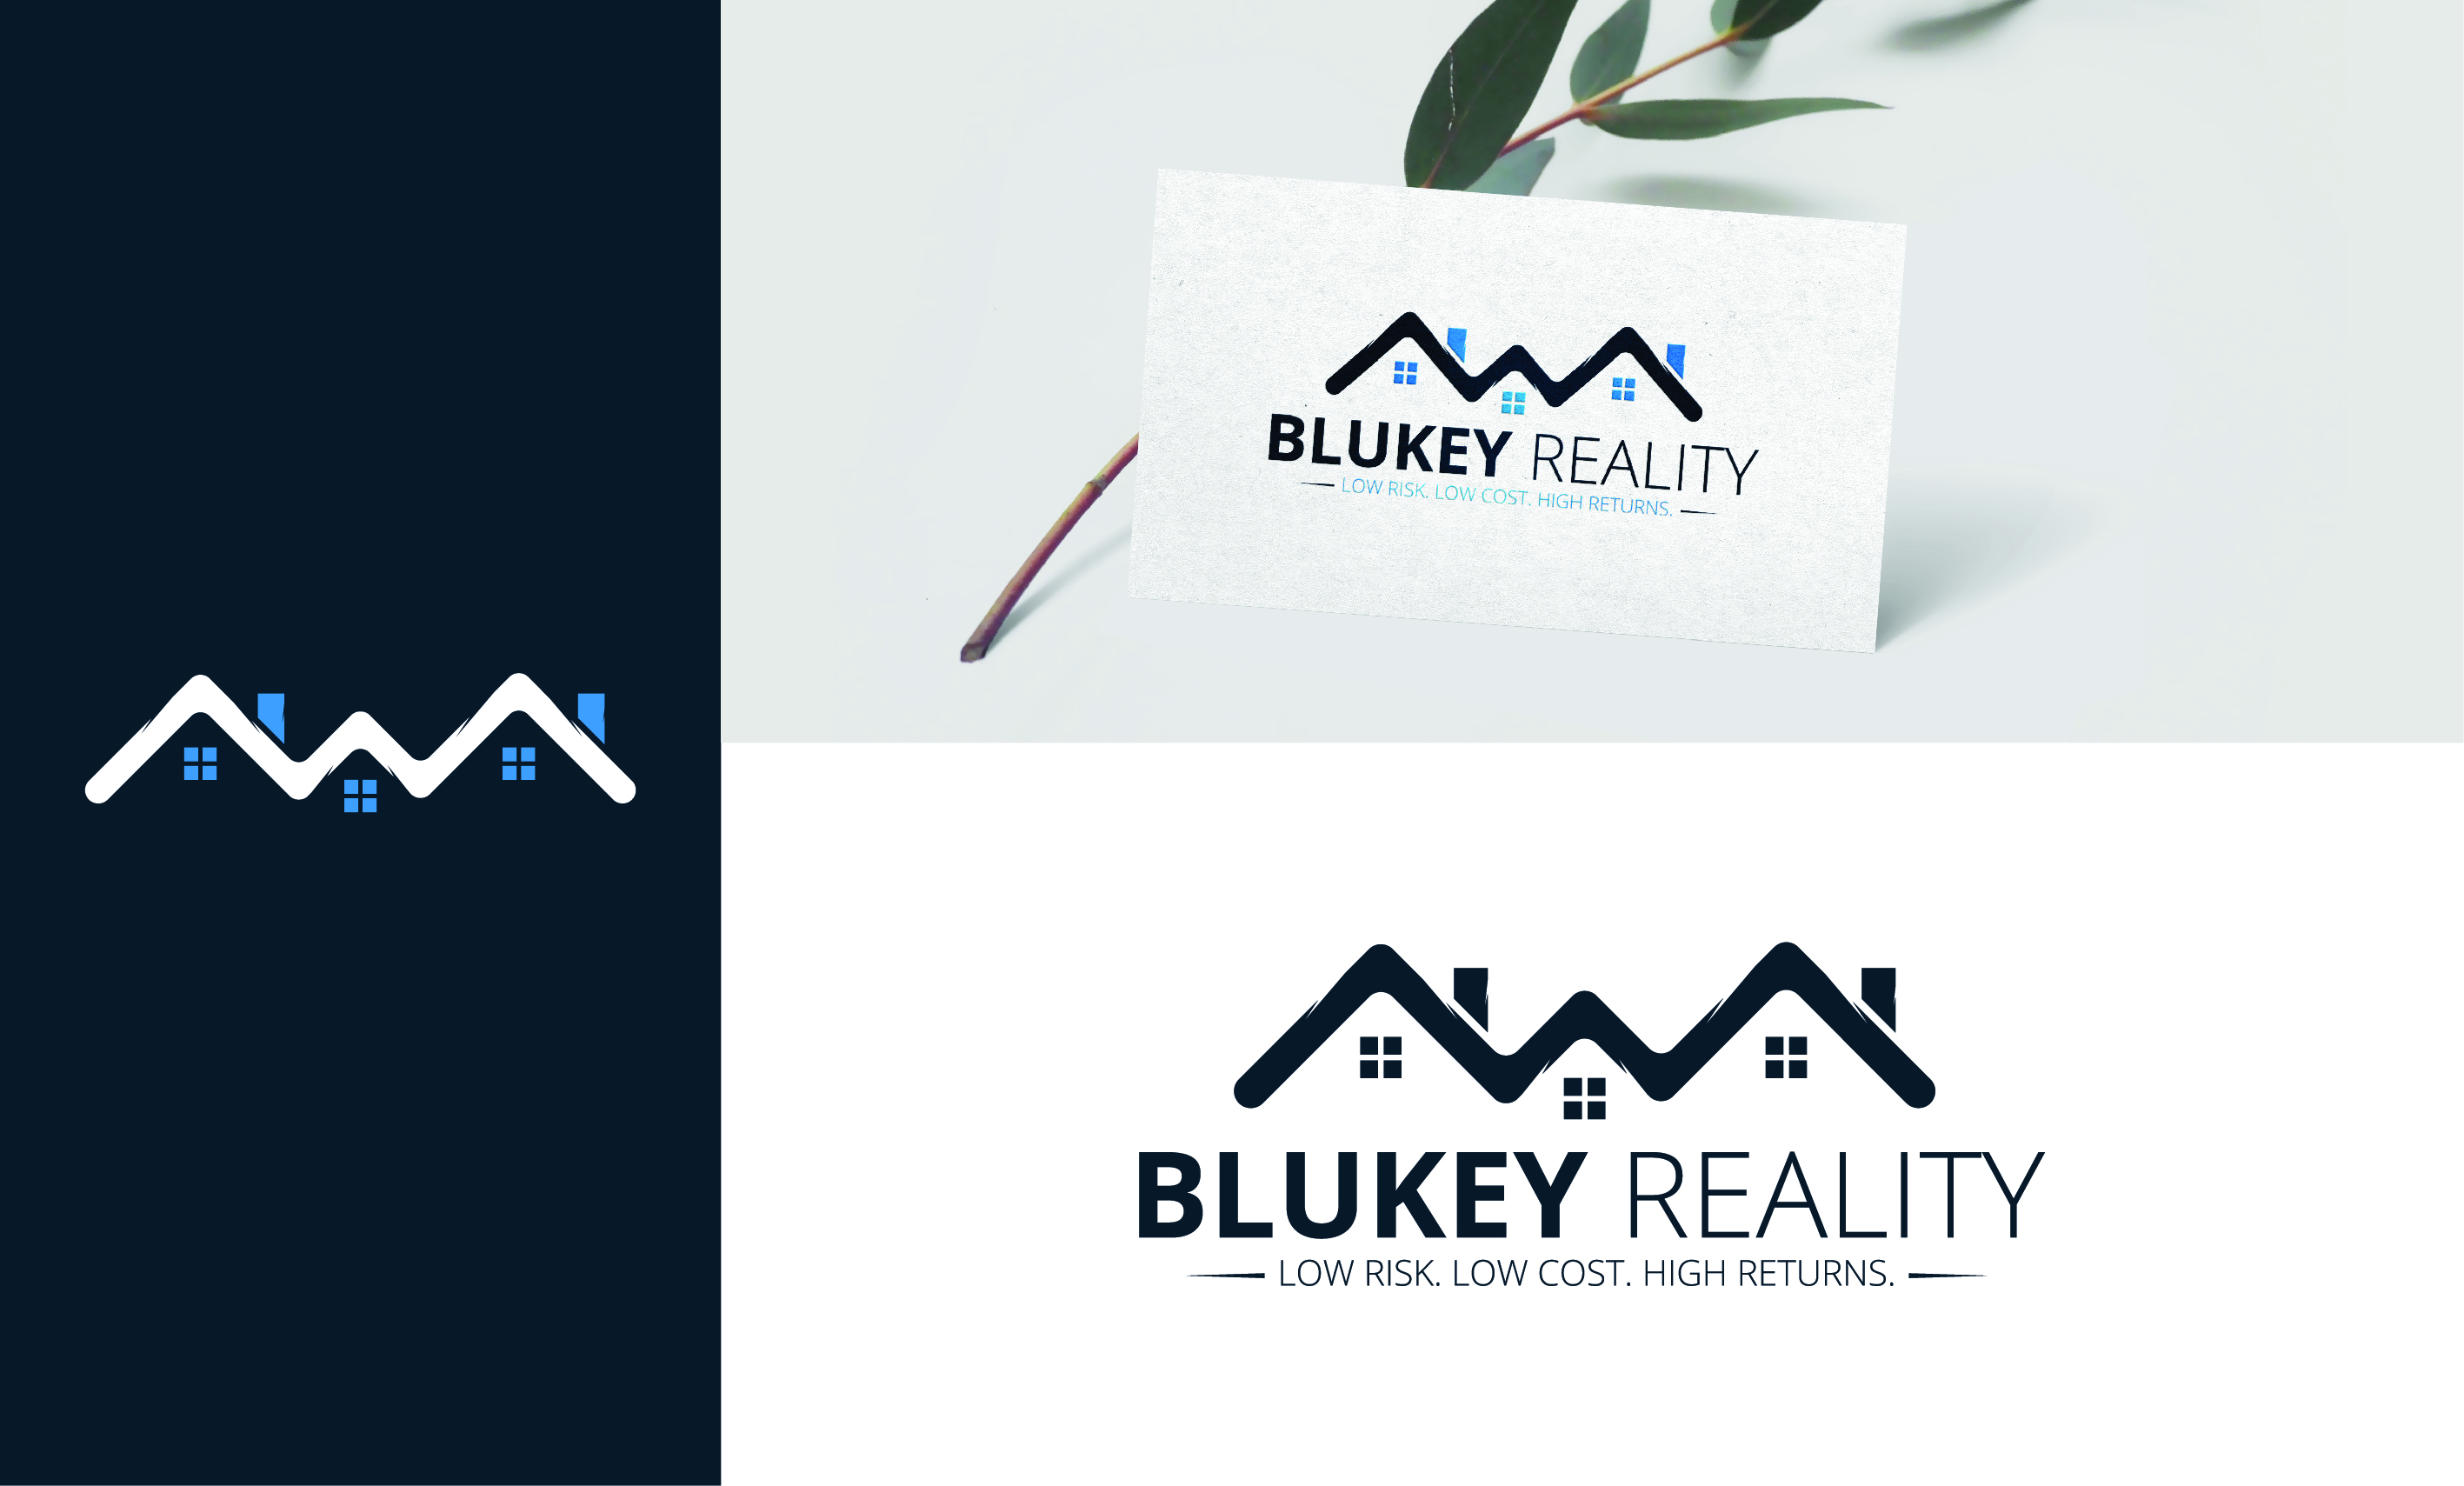 I will do a versatile, creative logo design for your company